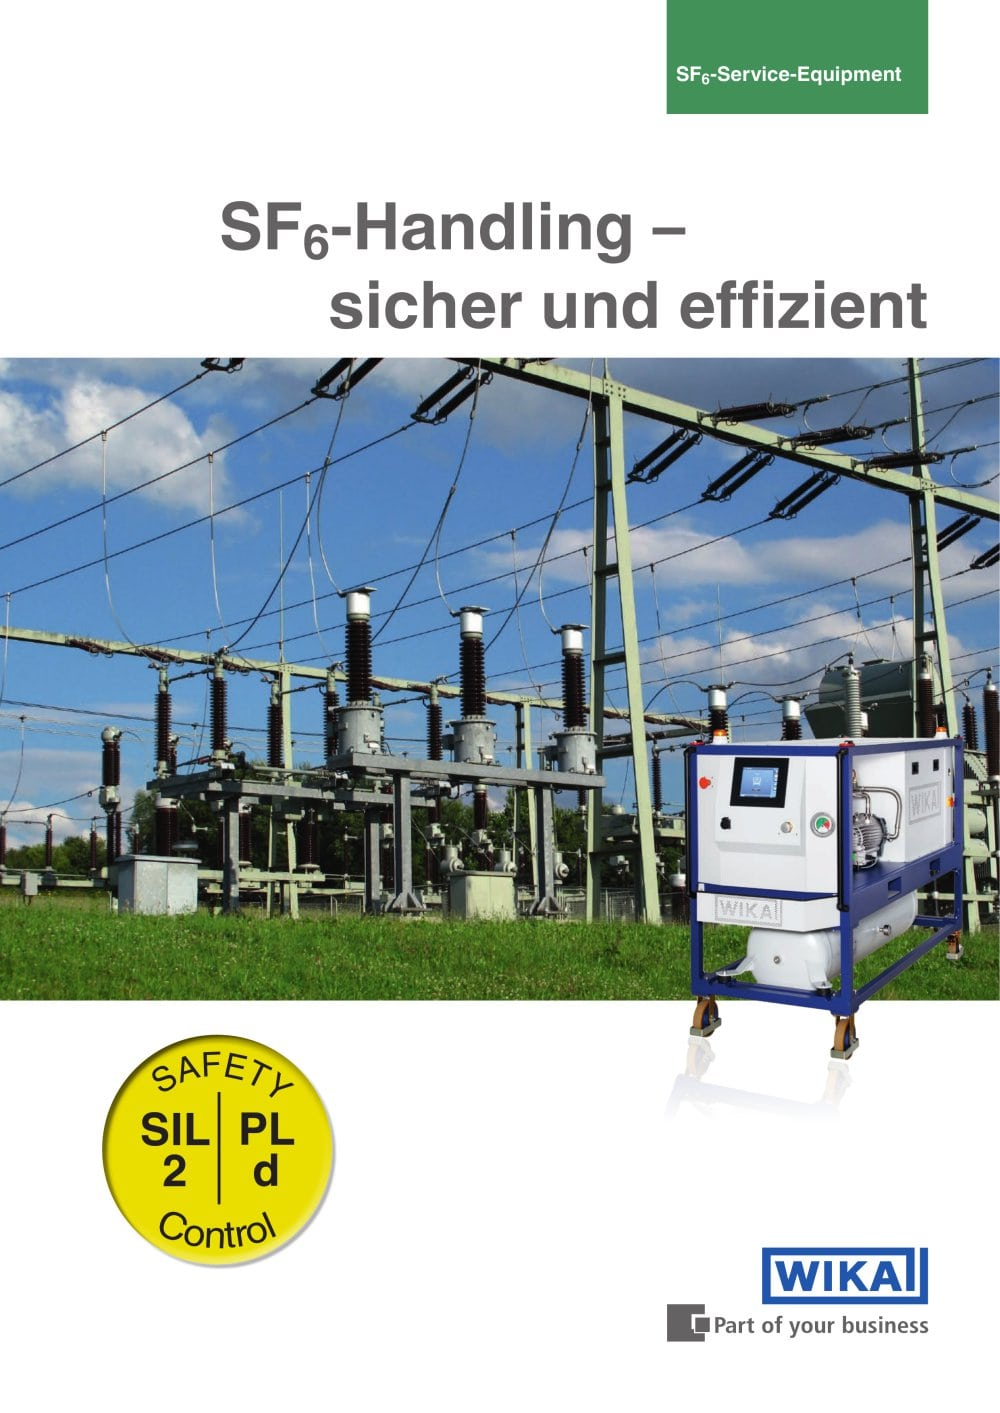 Sicher Safe Safe And Efficient Sf6 Handling Gpu 2000 Wika Alexander Wiegand